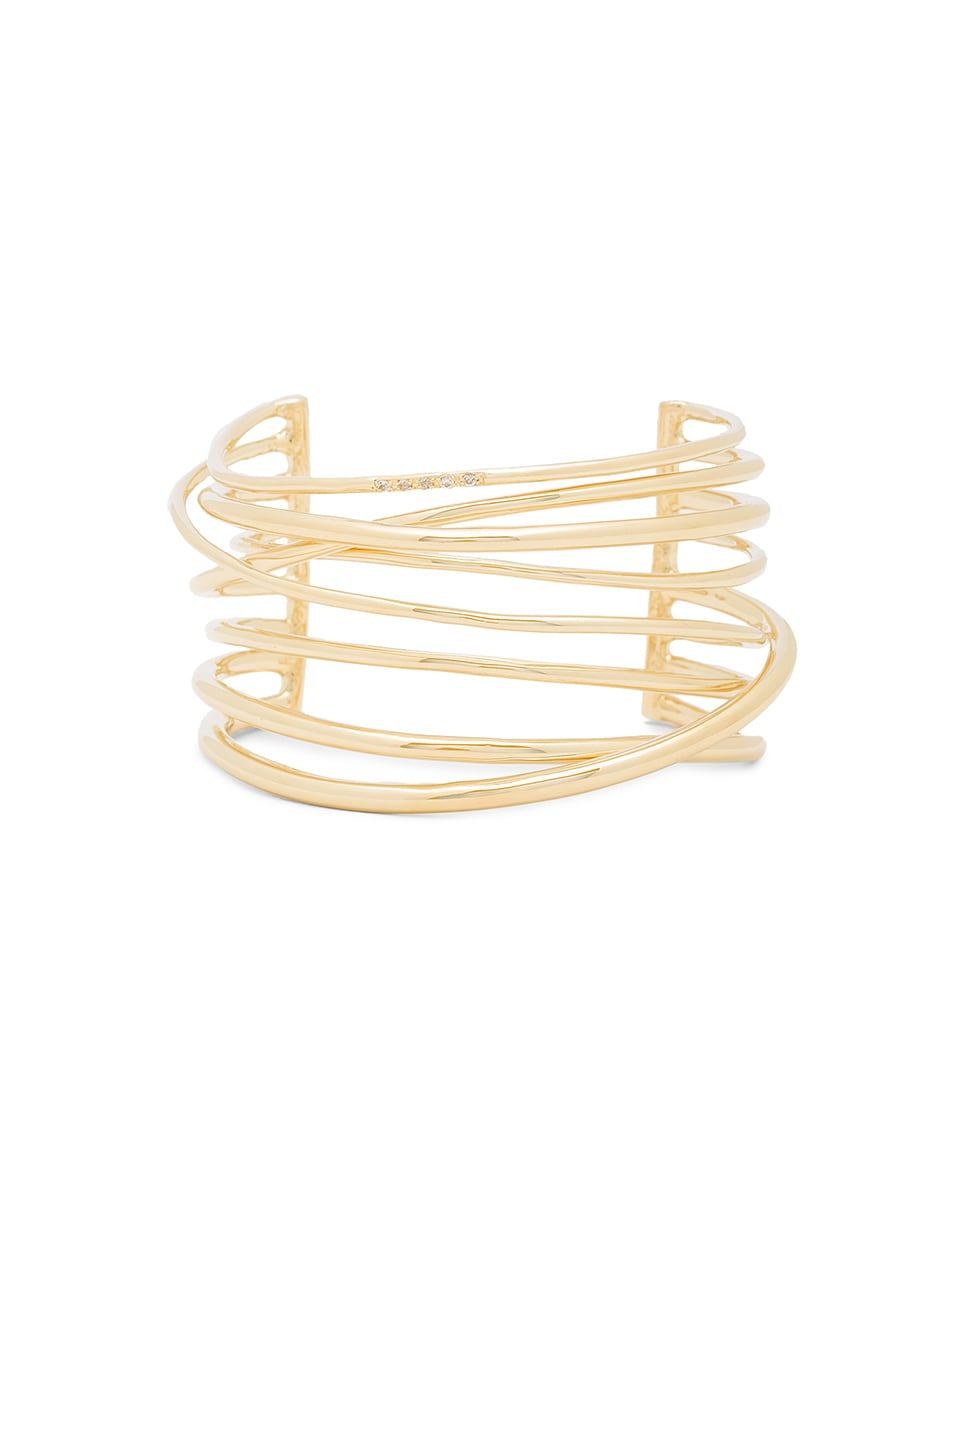 Elizabeth and James Roxy Cuff in Yellow Gold